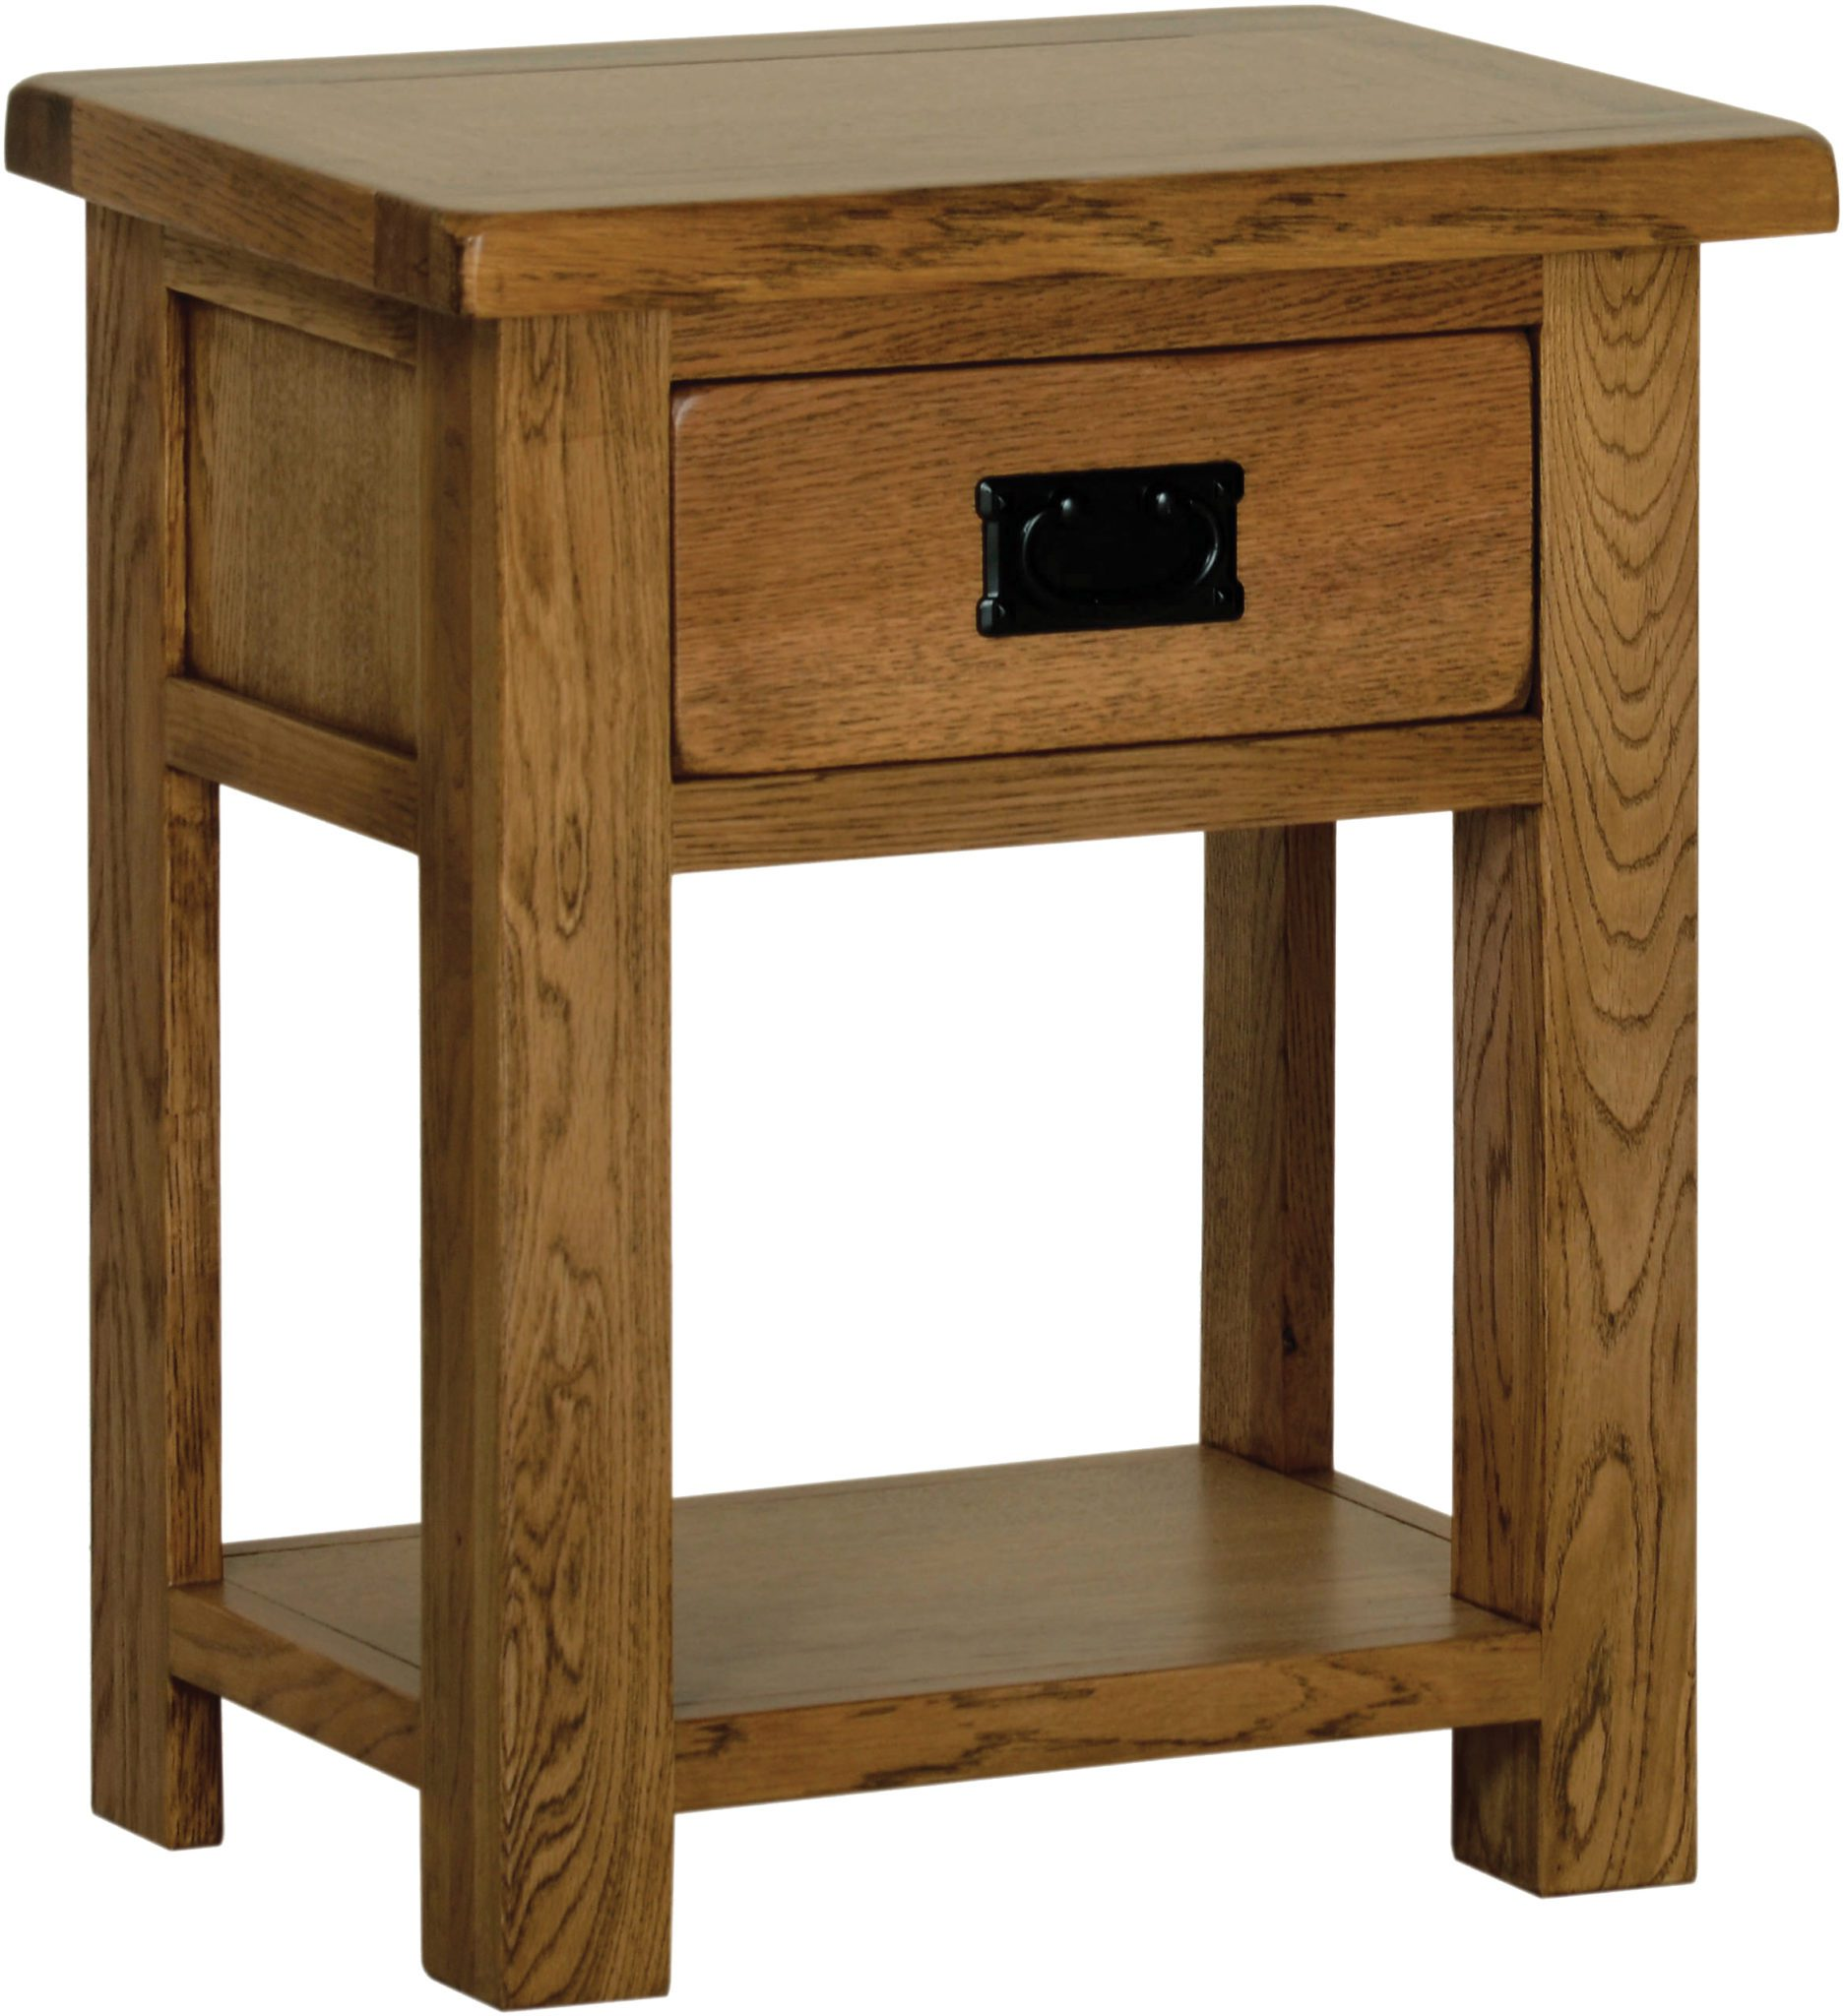 Sudbury Oak Night Stand. 1 handy drawer and shelf below. rustic oak style straight lines and shaped edges on tops. rustic black drop down handle SRB25